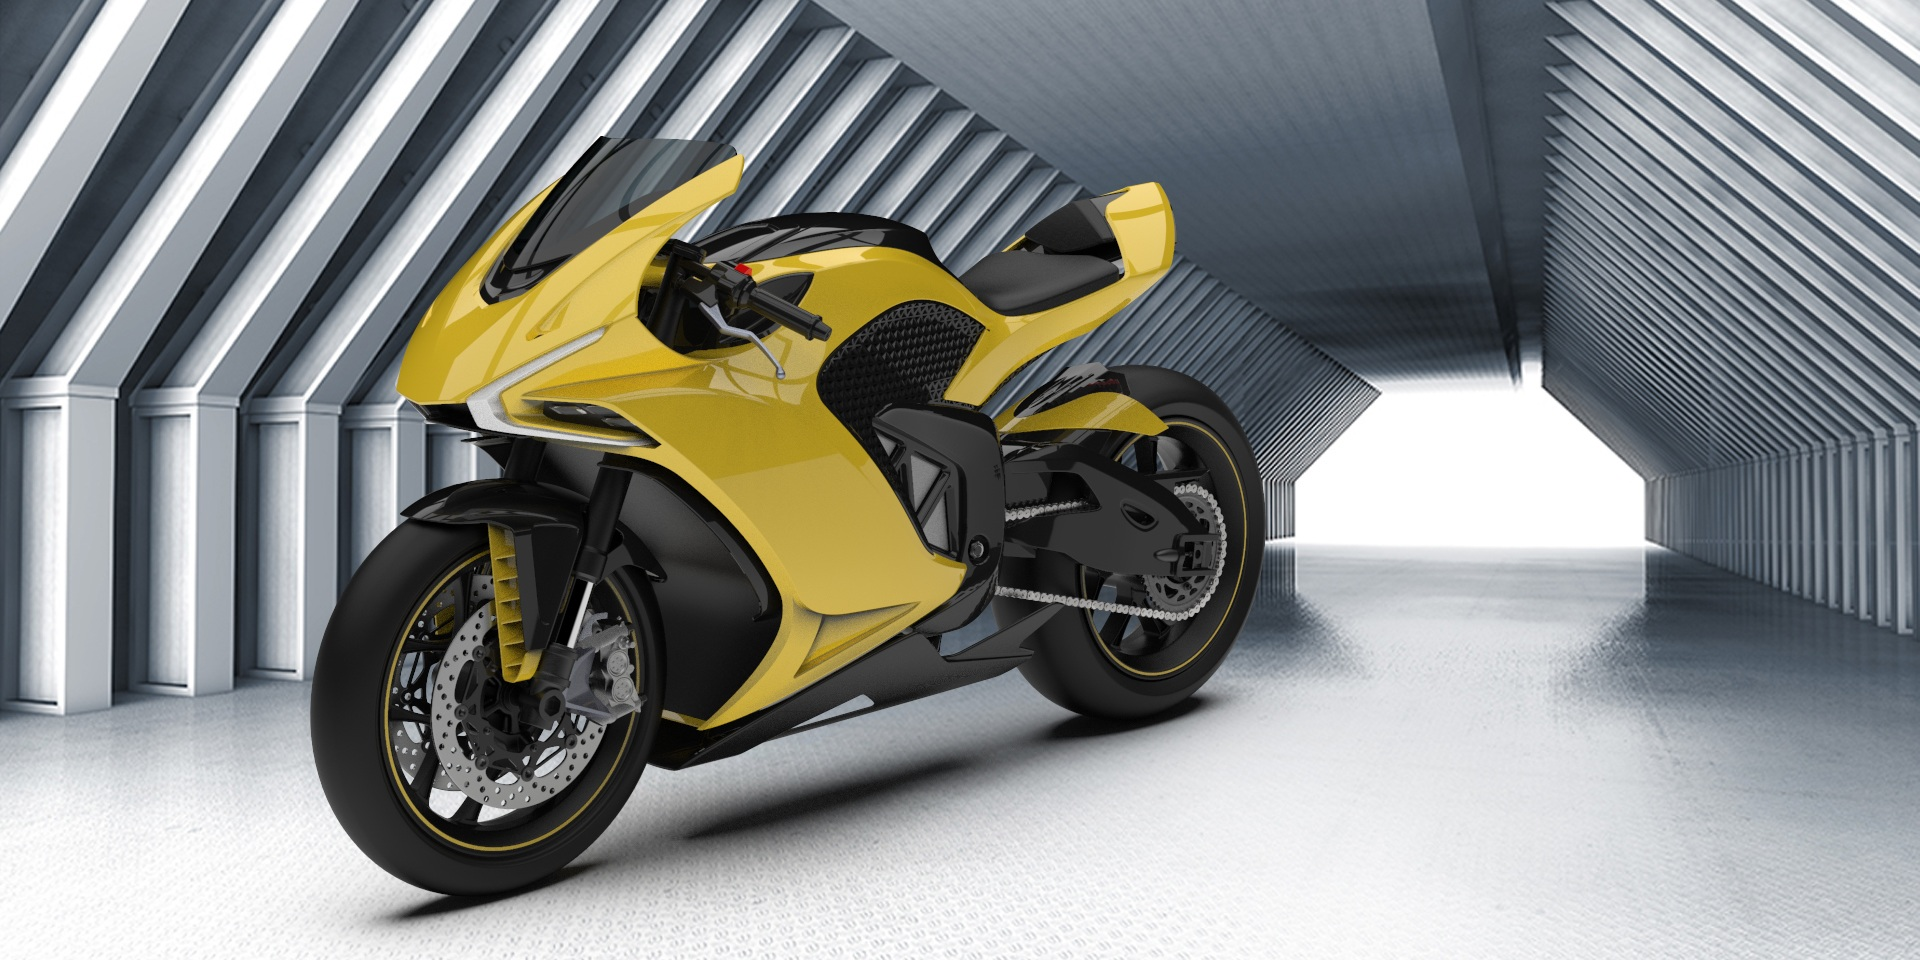 New variable geometry electric motorcycle with 360º radar and rear camera